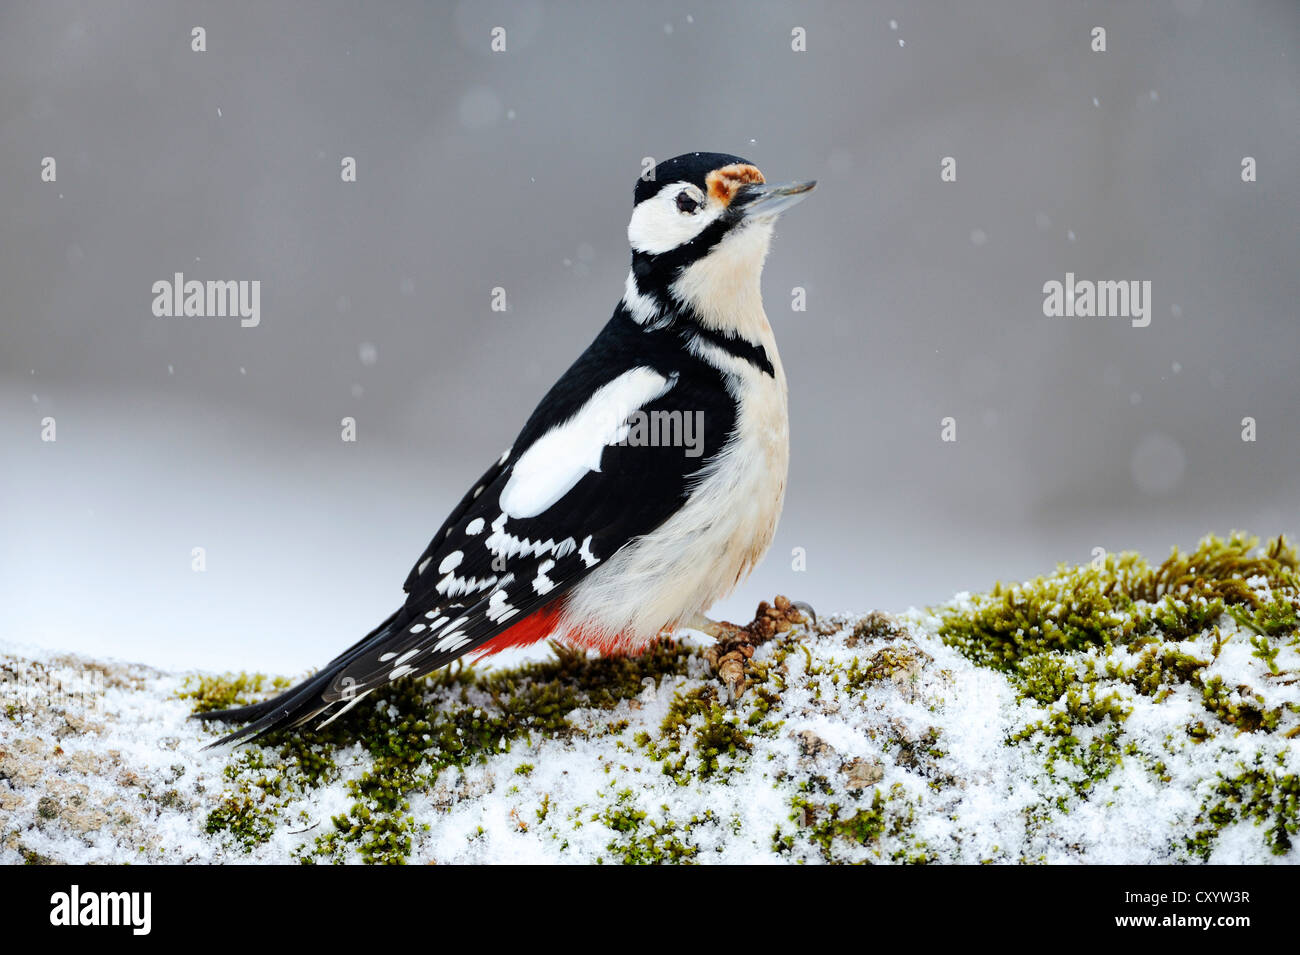 Great Spotted Woodpecker (Dendrocopos major) during snowfall, Bulgaria, Europe - Stock Image